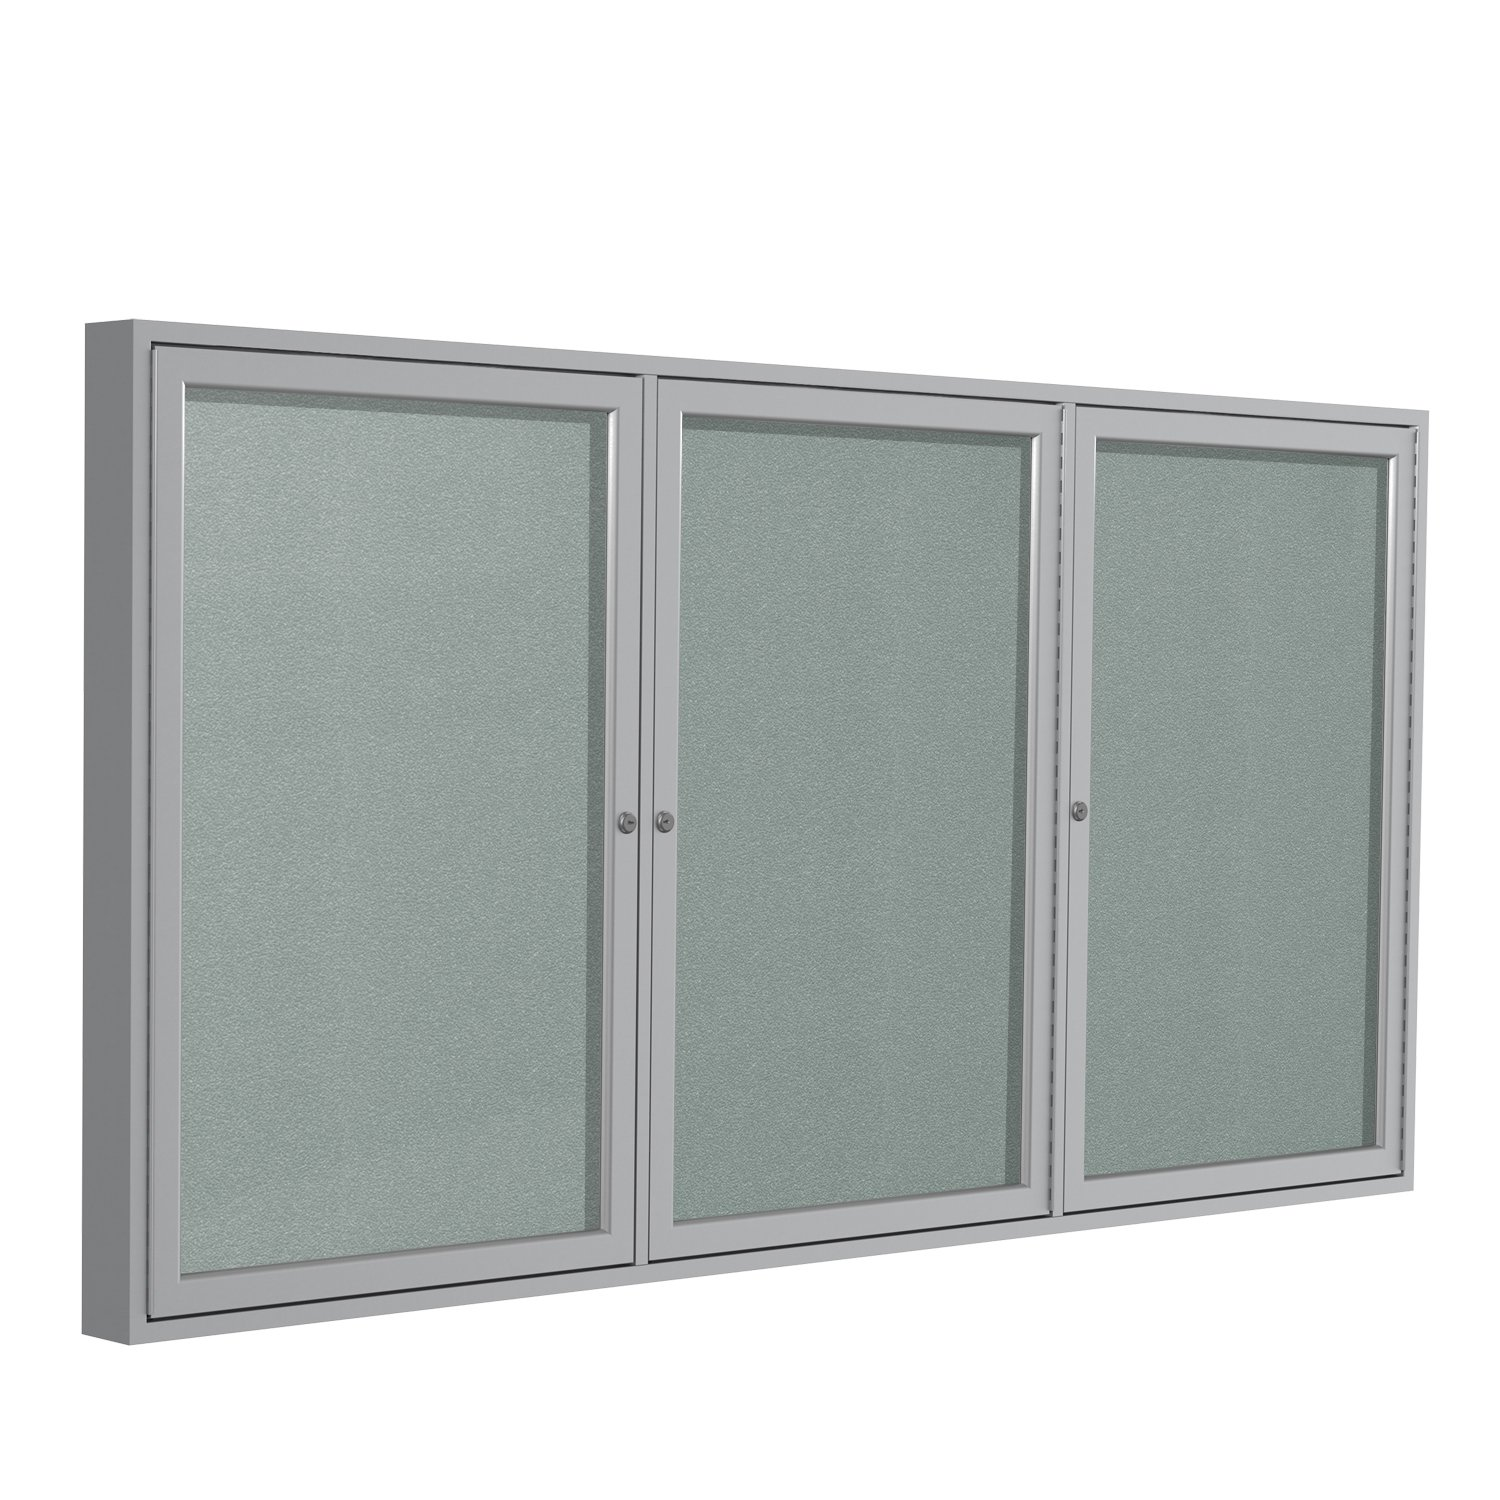 3 Door Outdoor Enclosed Bulletin Board Size: 4' H x 6' W, Frame Finish: Satin, Surface Color: Silver